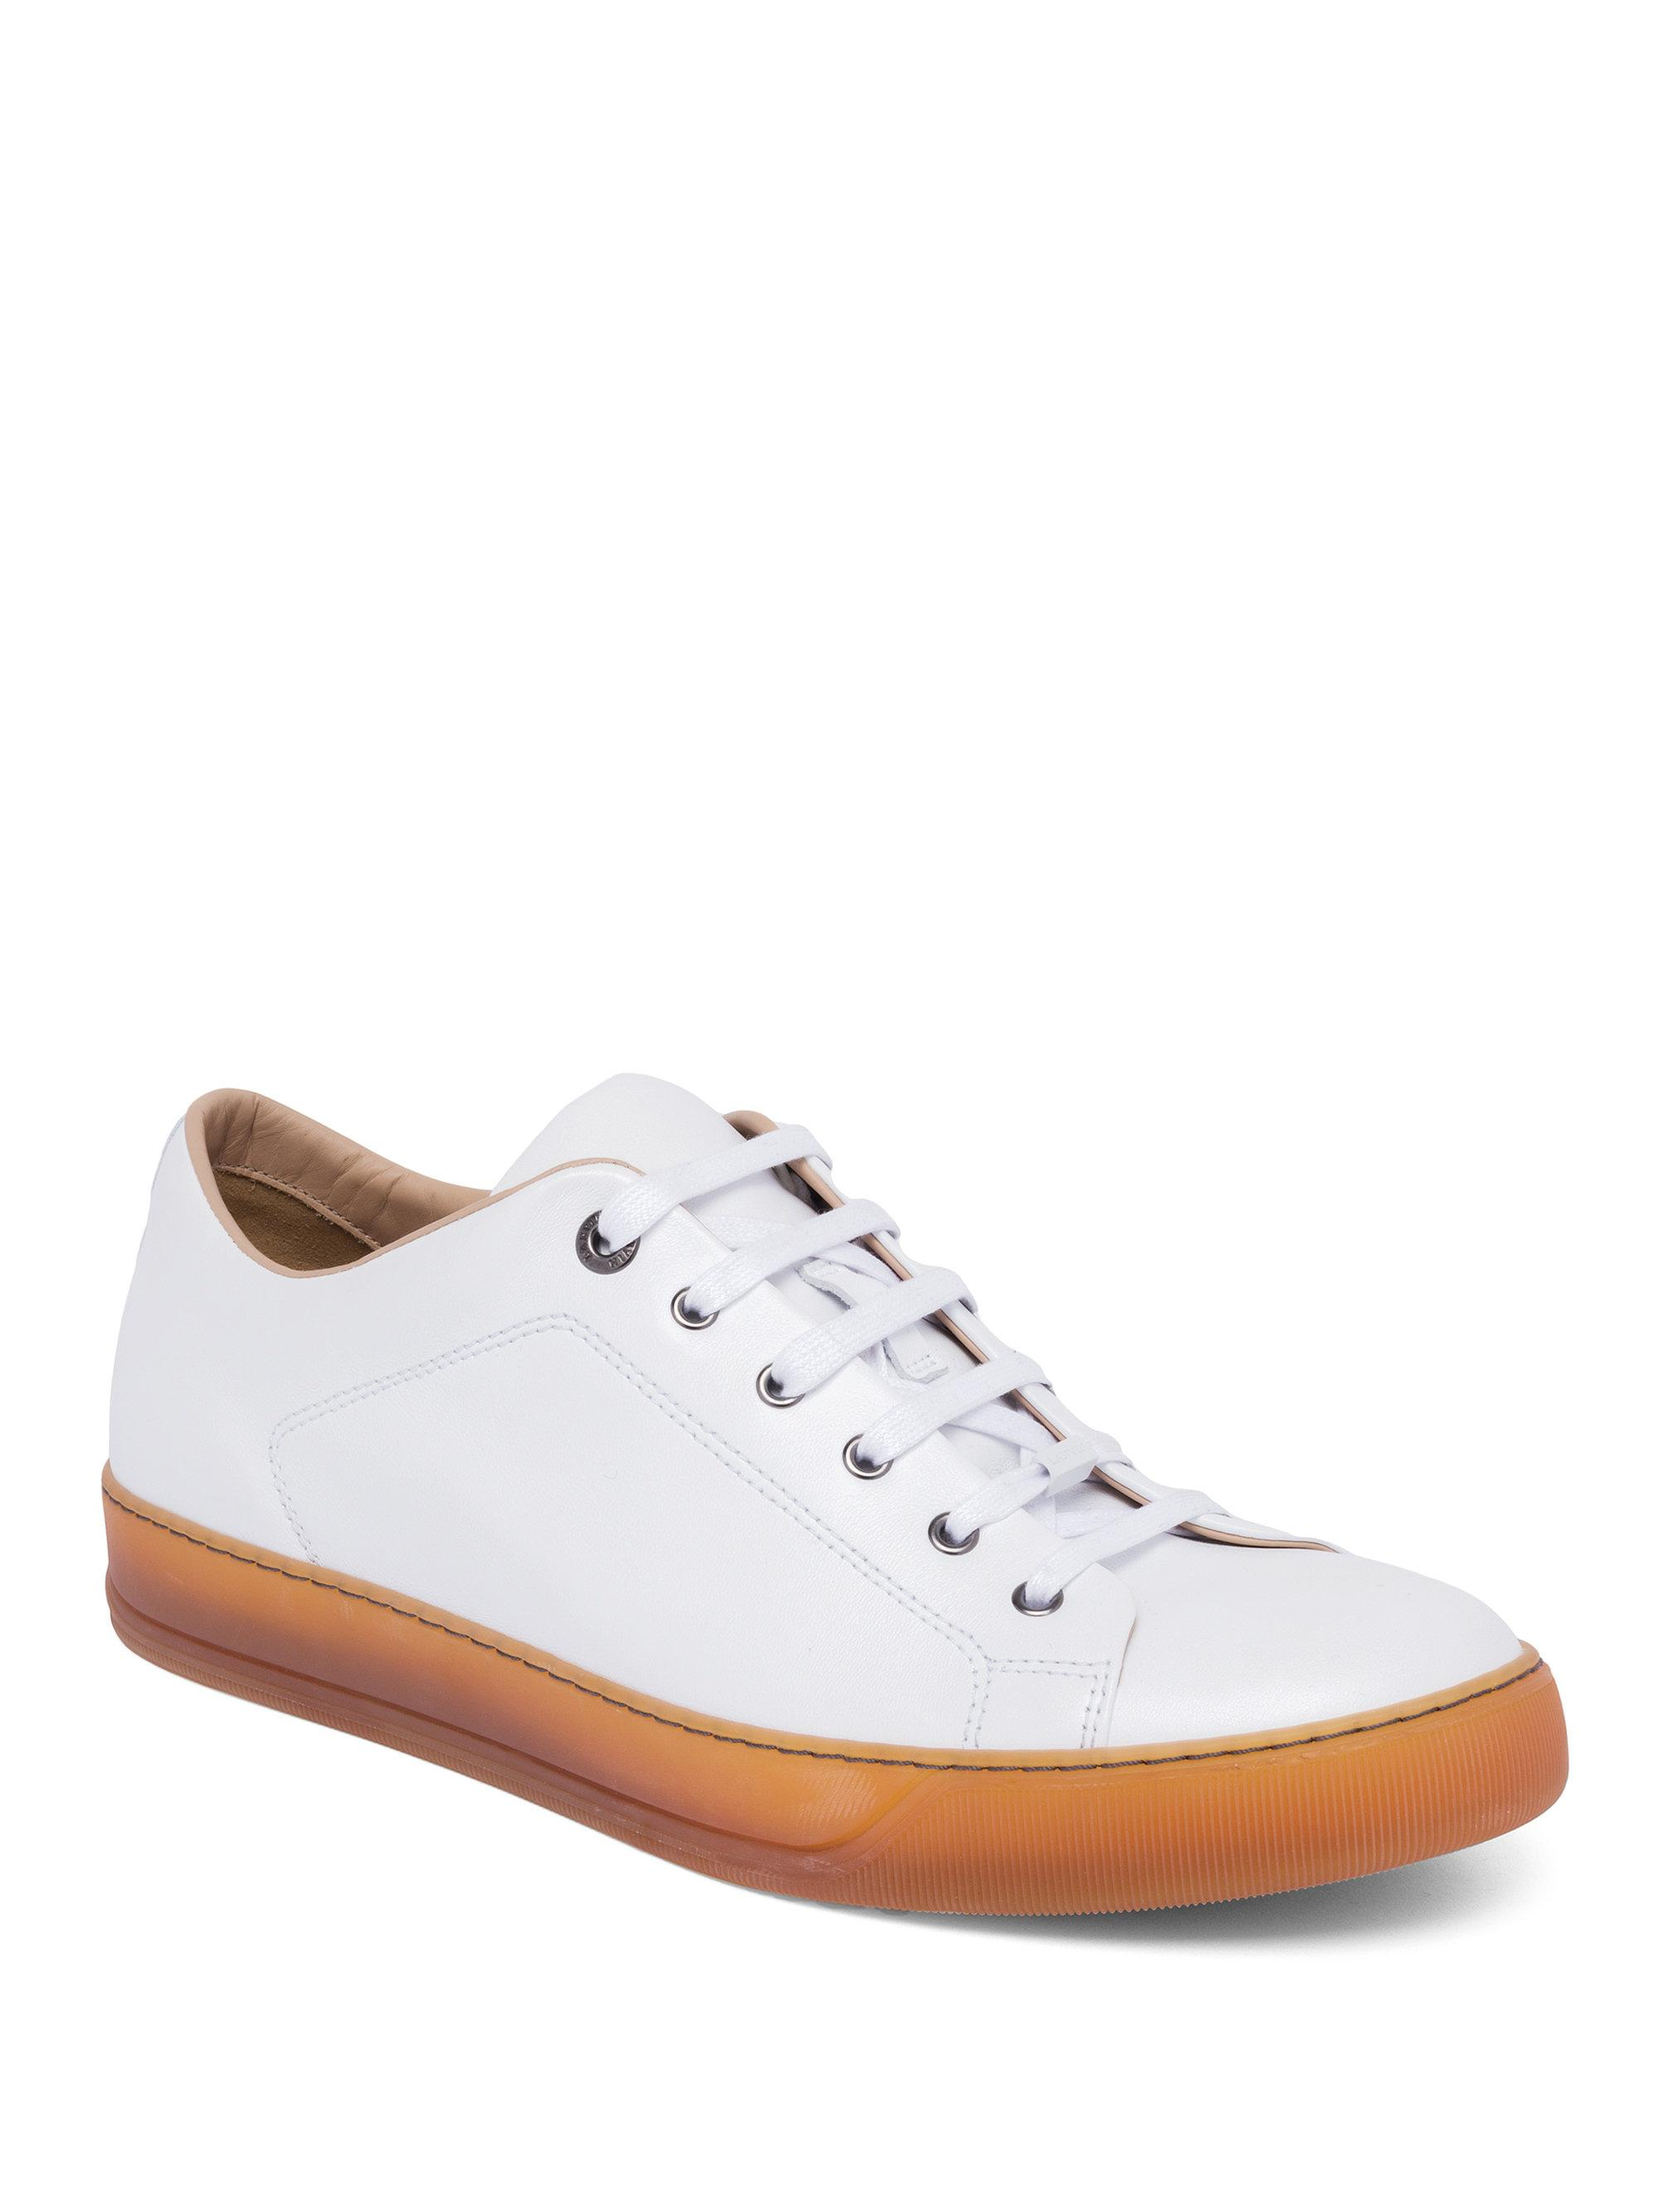 For Lanvin Men Leather Sneakers Lyst White Low Top In Z0Pnqd6x